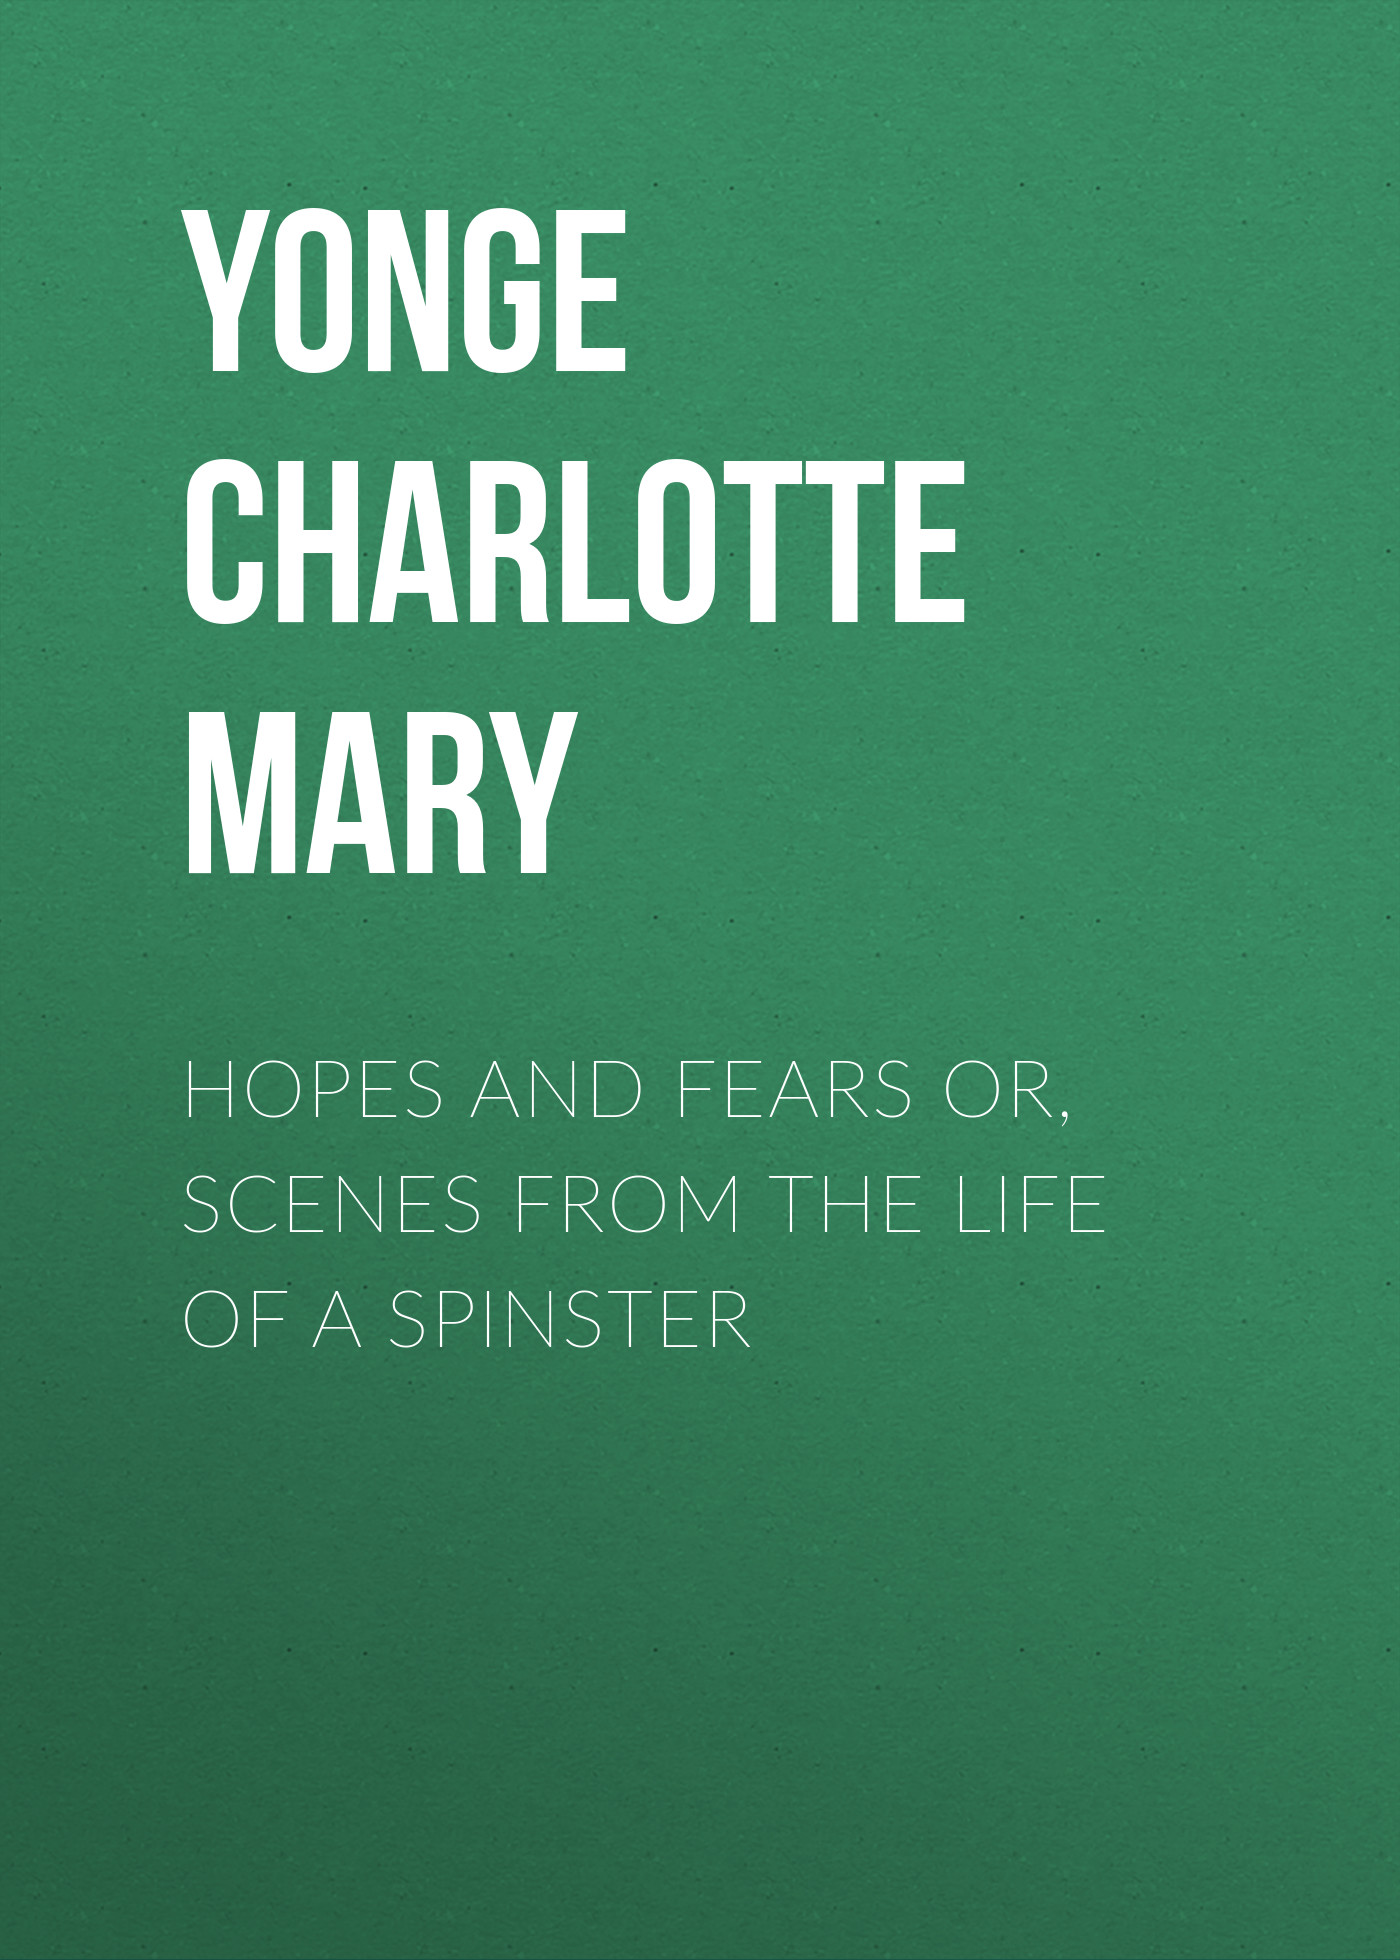 Yonge Charlotte Mary Hopes and Fears or, scenes from the life of a spinster charlotte m yonge life of john coleridge patteson missionary bishop of the melanesian islands